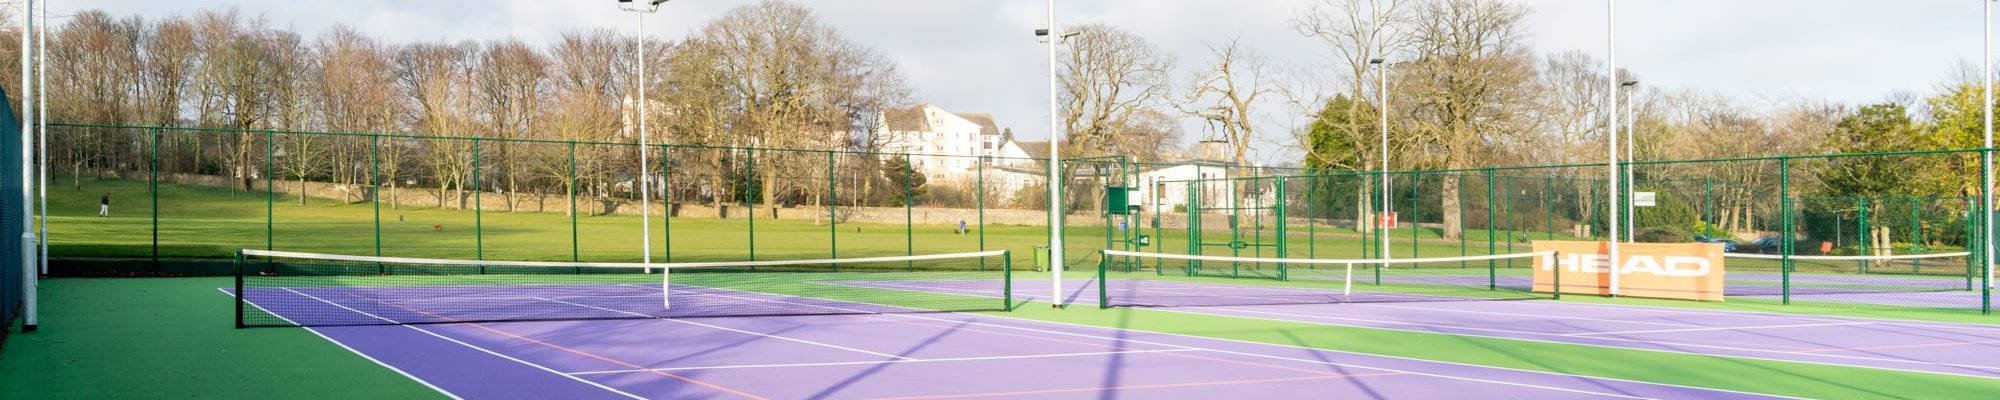 Aberdeen Tennis Centre